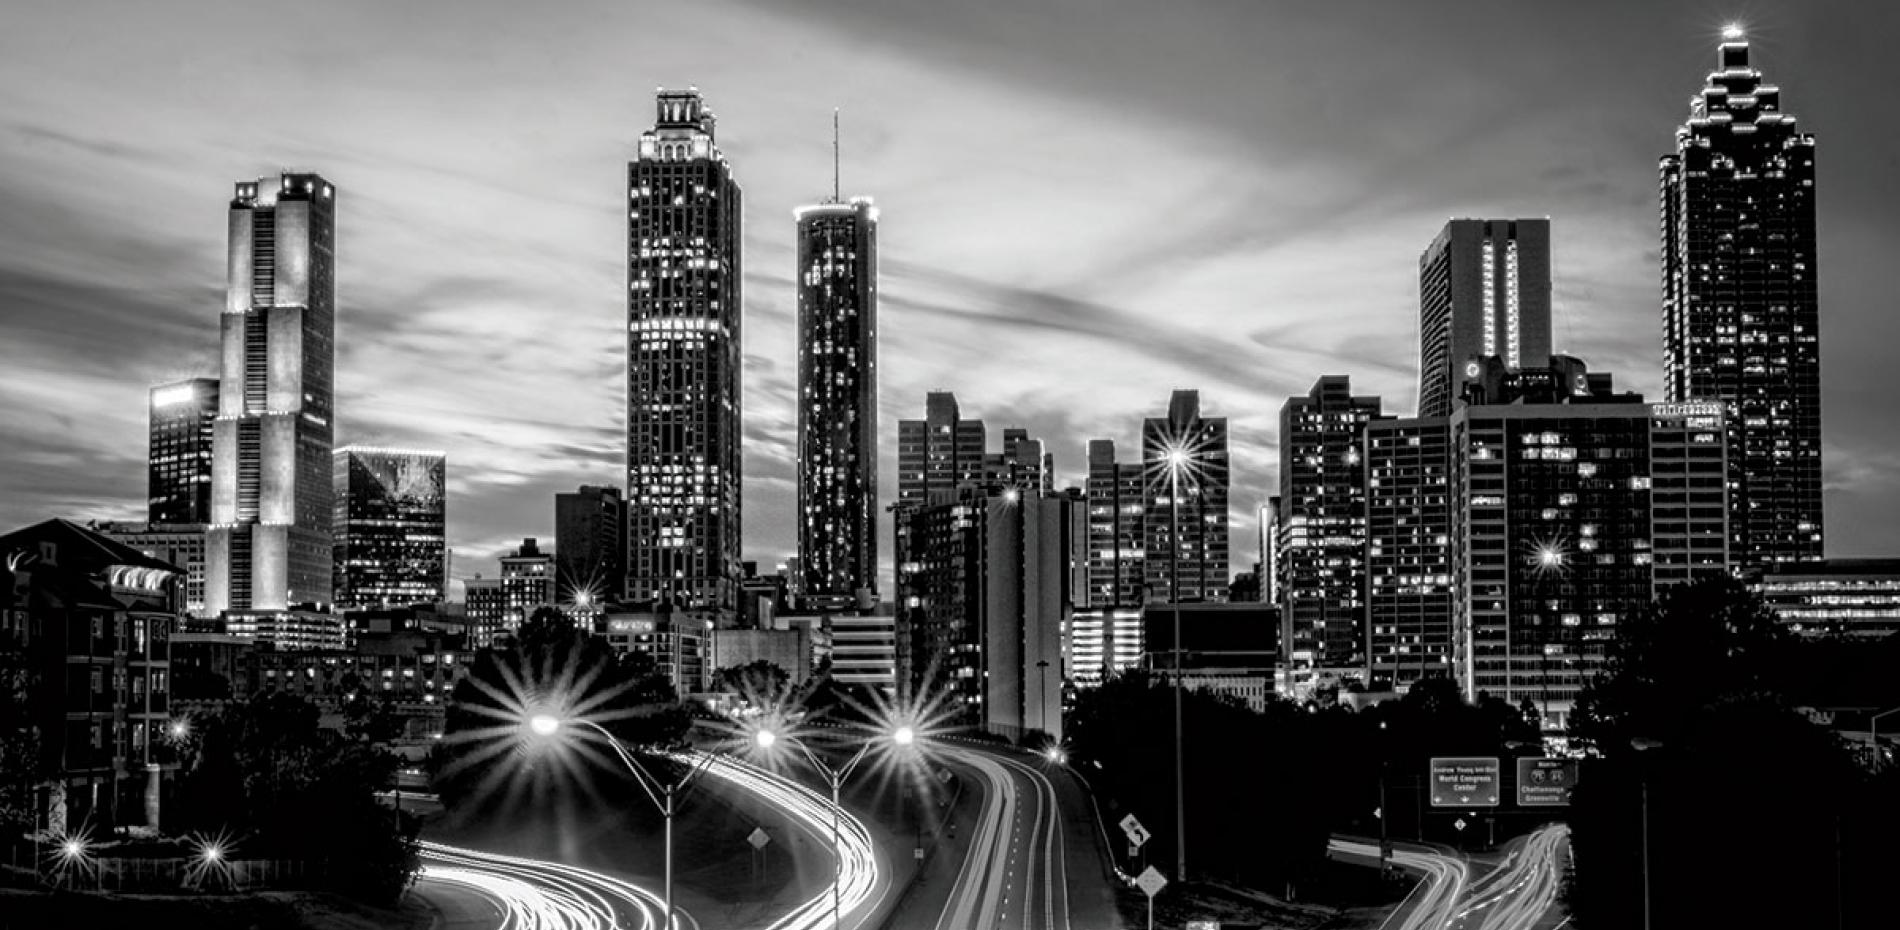 Black and white shot of a city skyline